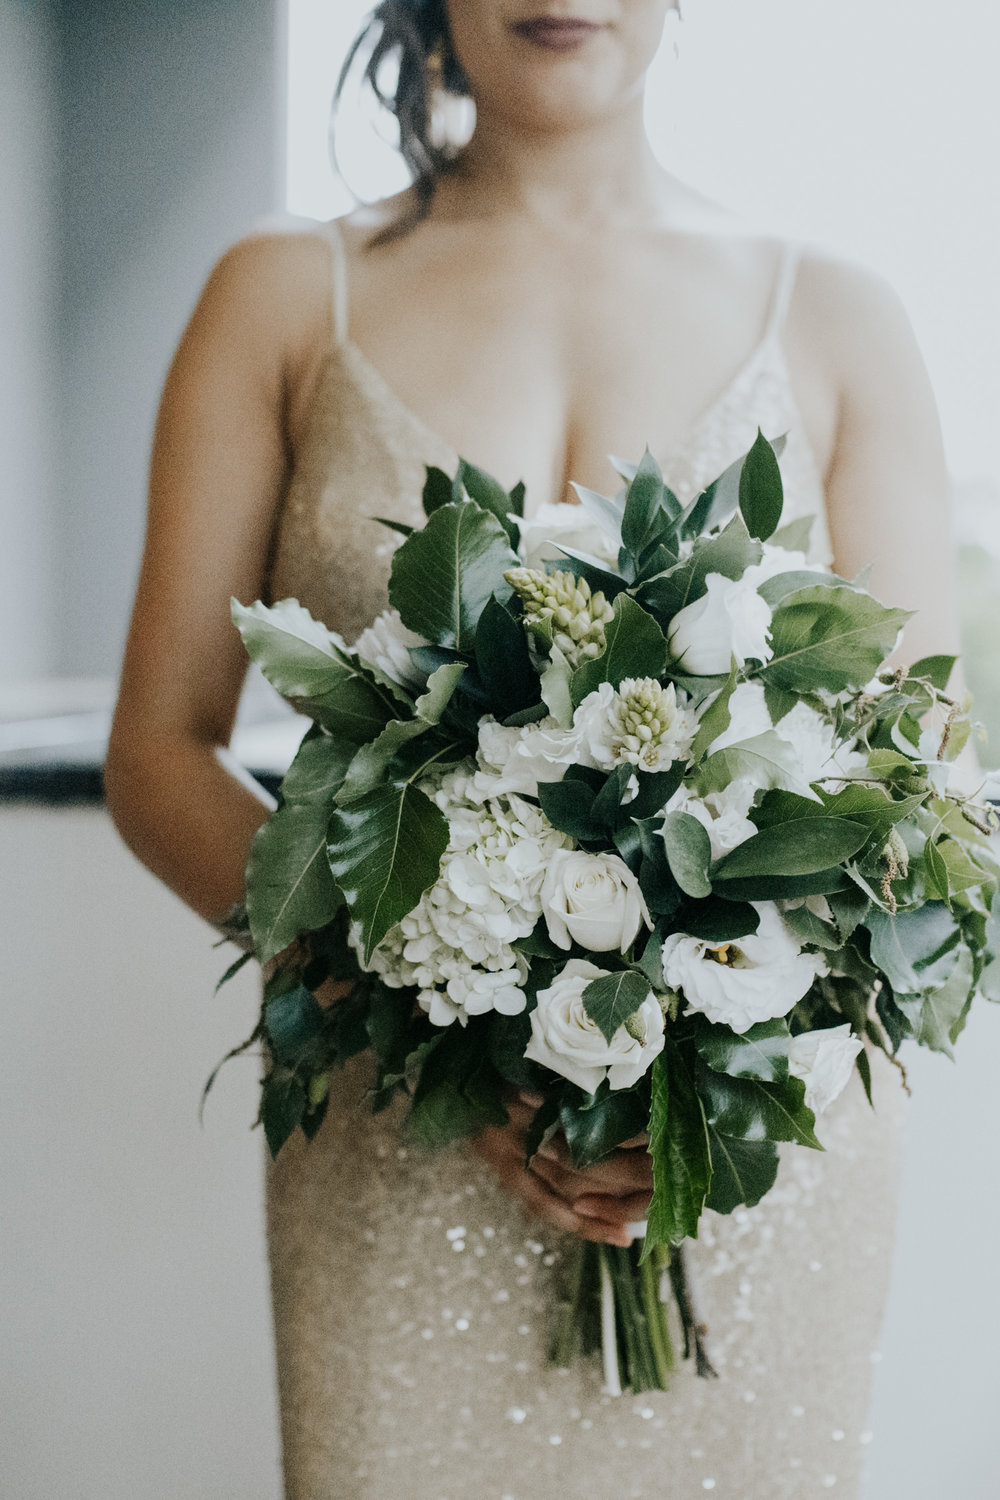 White and green foliage bouquet- Gold wedding dress- Intimate hotel room wedding Canberra - photography by Jenny Wu